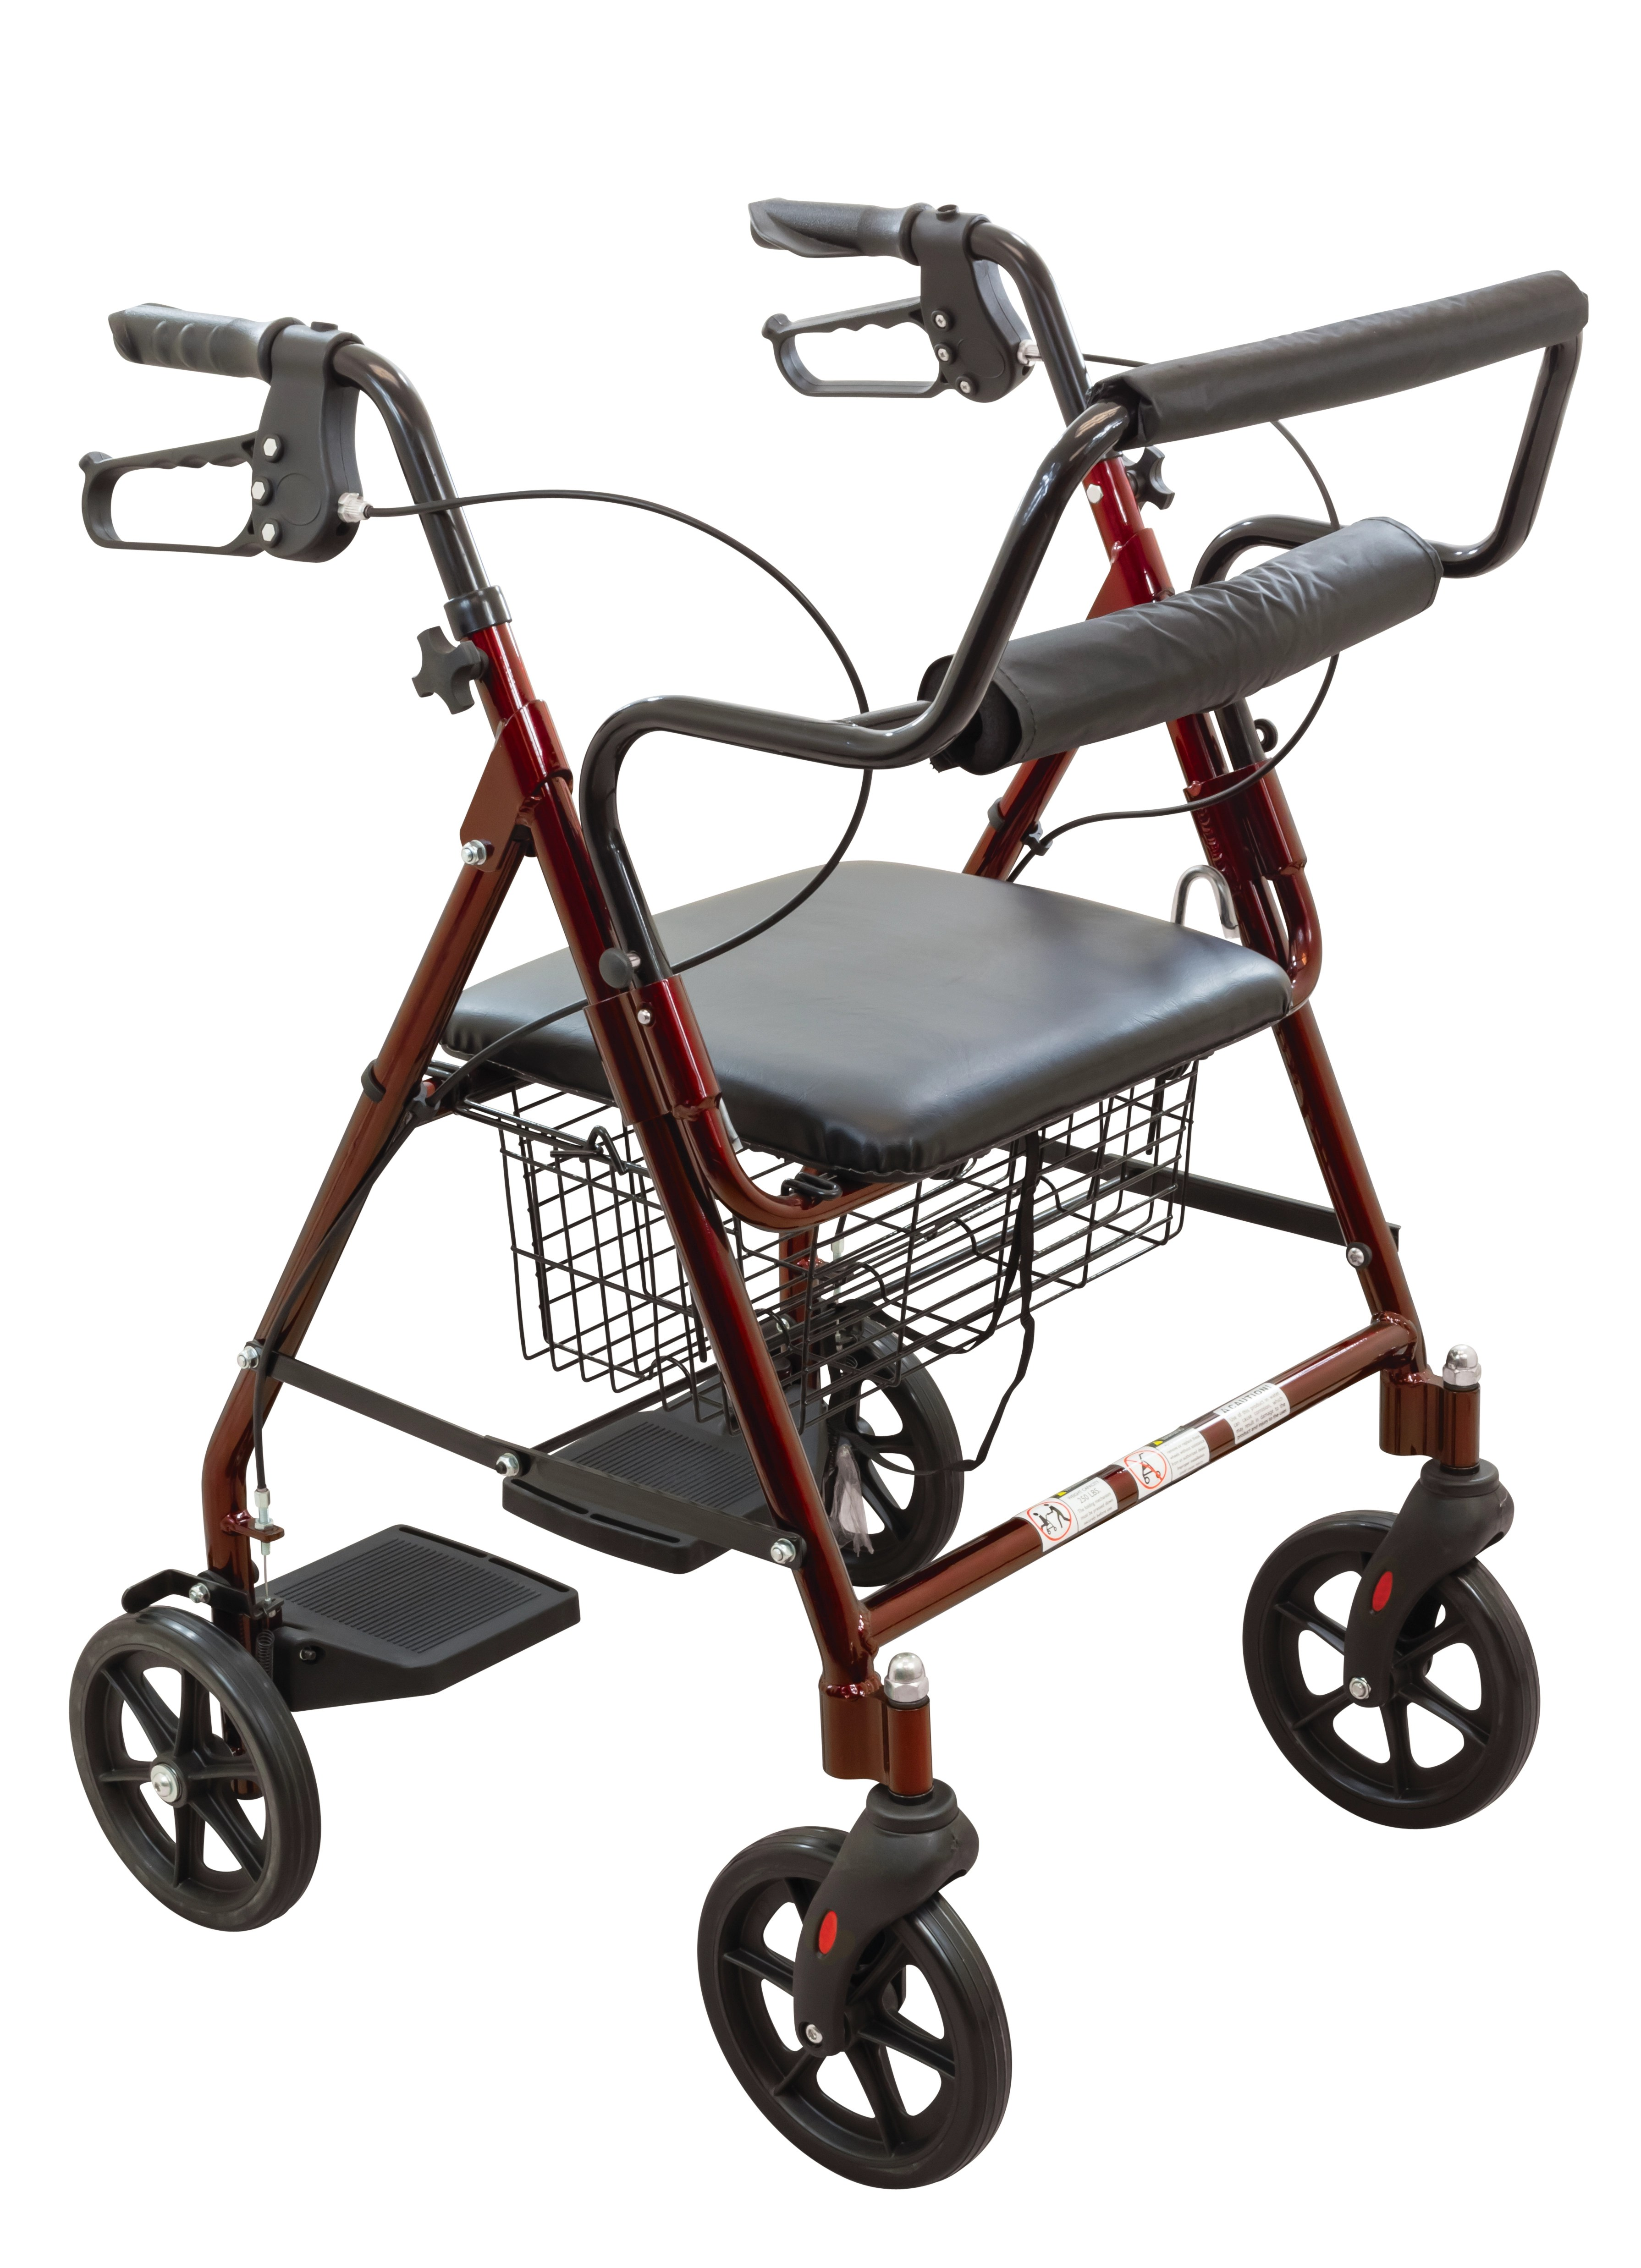 walker transport chair in one hugo navigator old fashioned metal lawn chairs luxury rollator combo rtty1